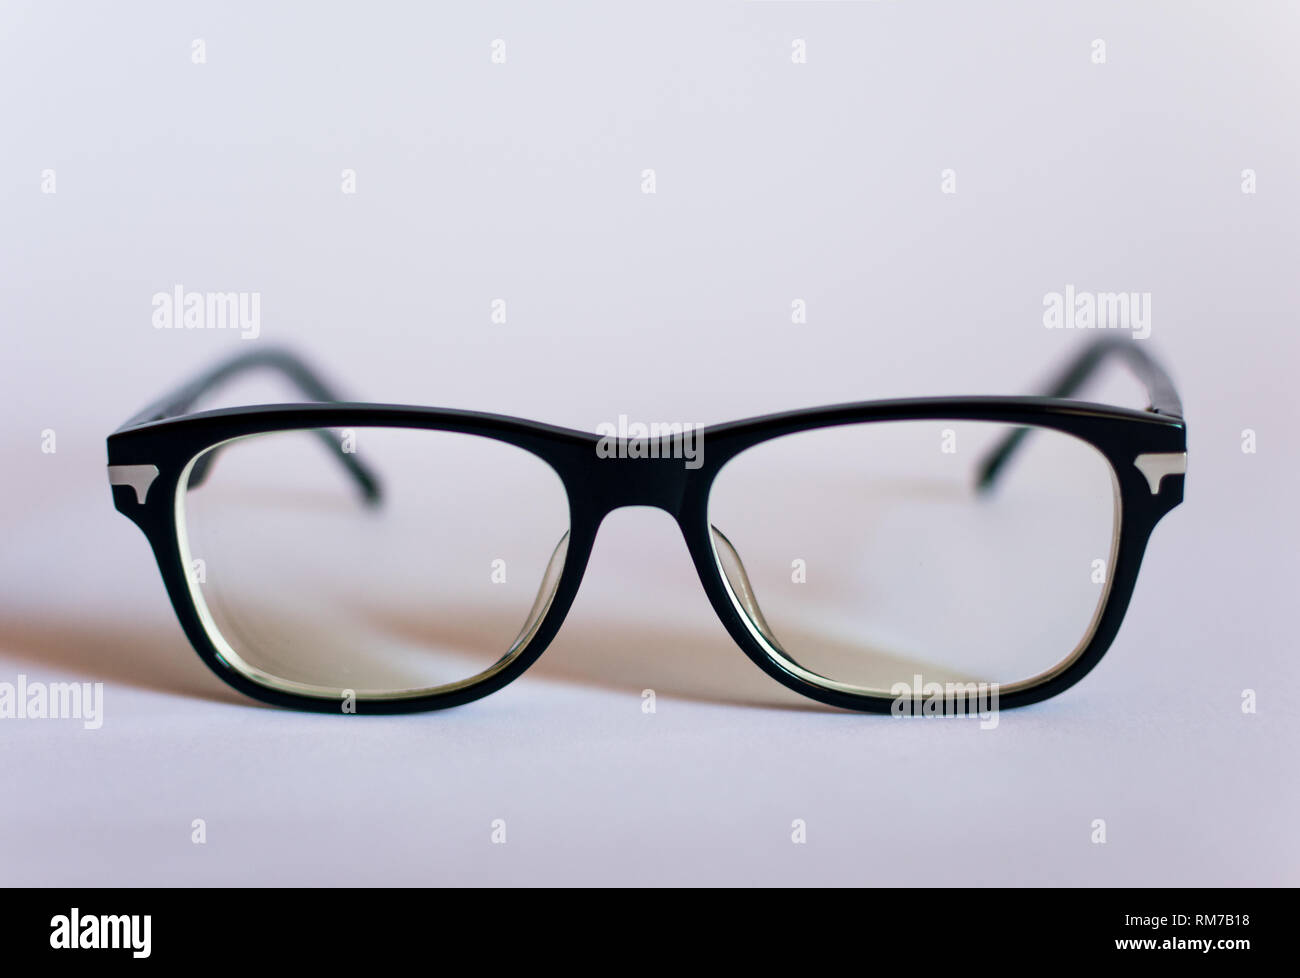 Anti blue light computer glasses on the white background. Glasses to protect your computer vision. - Stock Image